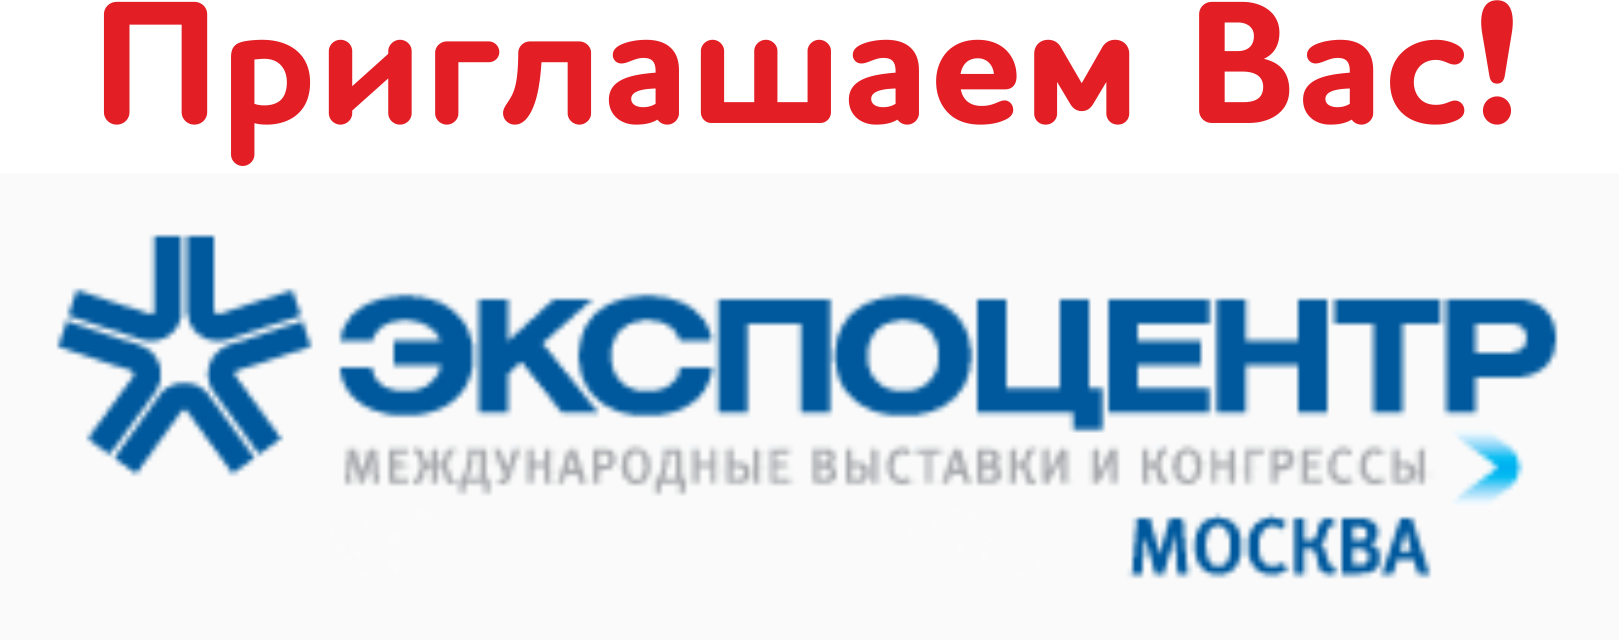 Экспоцентр.png